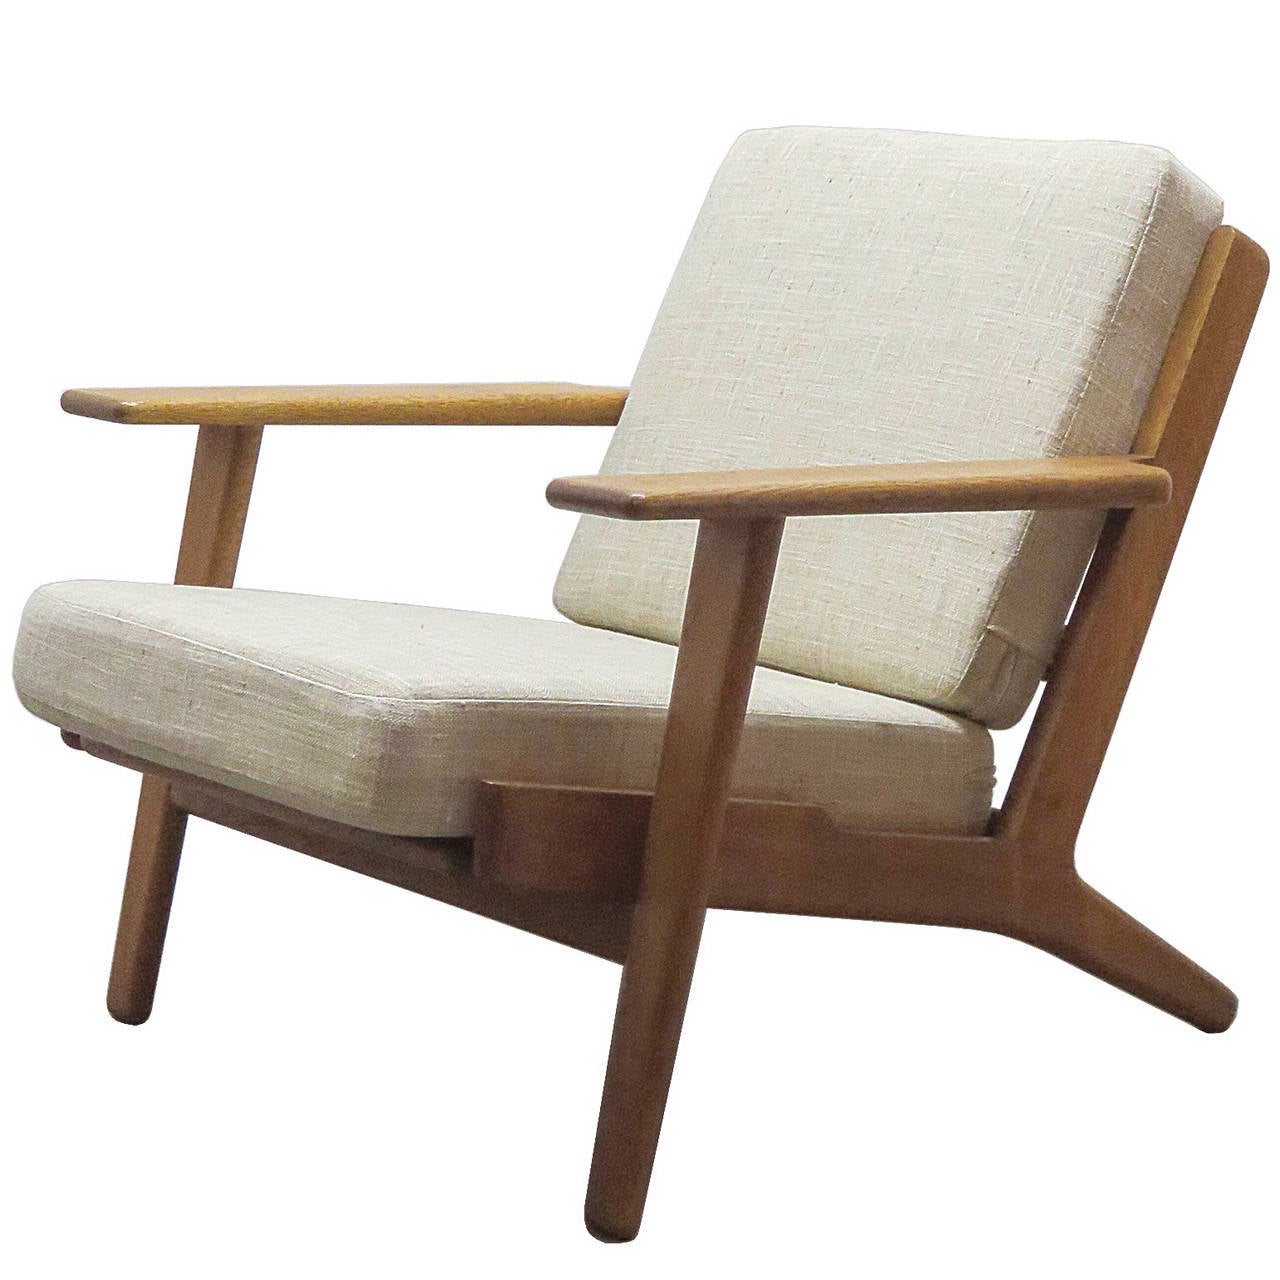 hans j wegner ge 290 lounge chair at 1stdibs. Black Bedroom Furniture Sets. Home Design Ideas